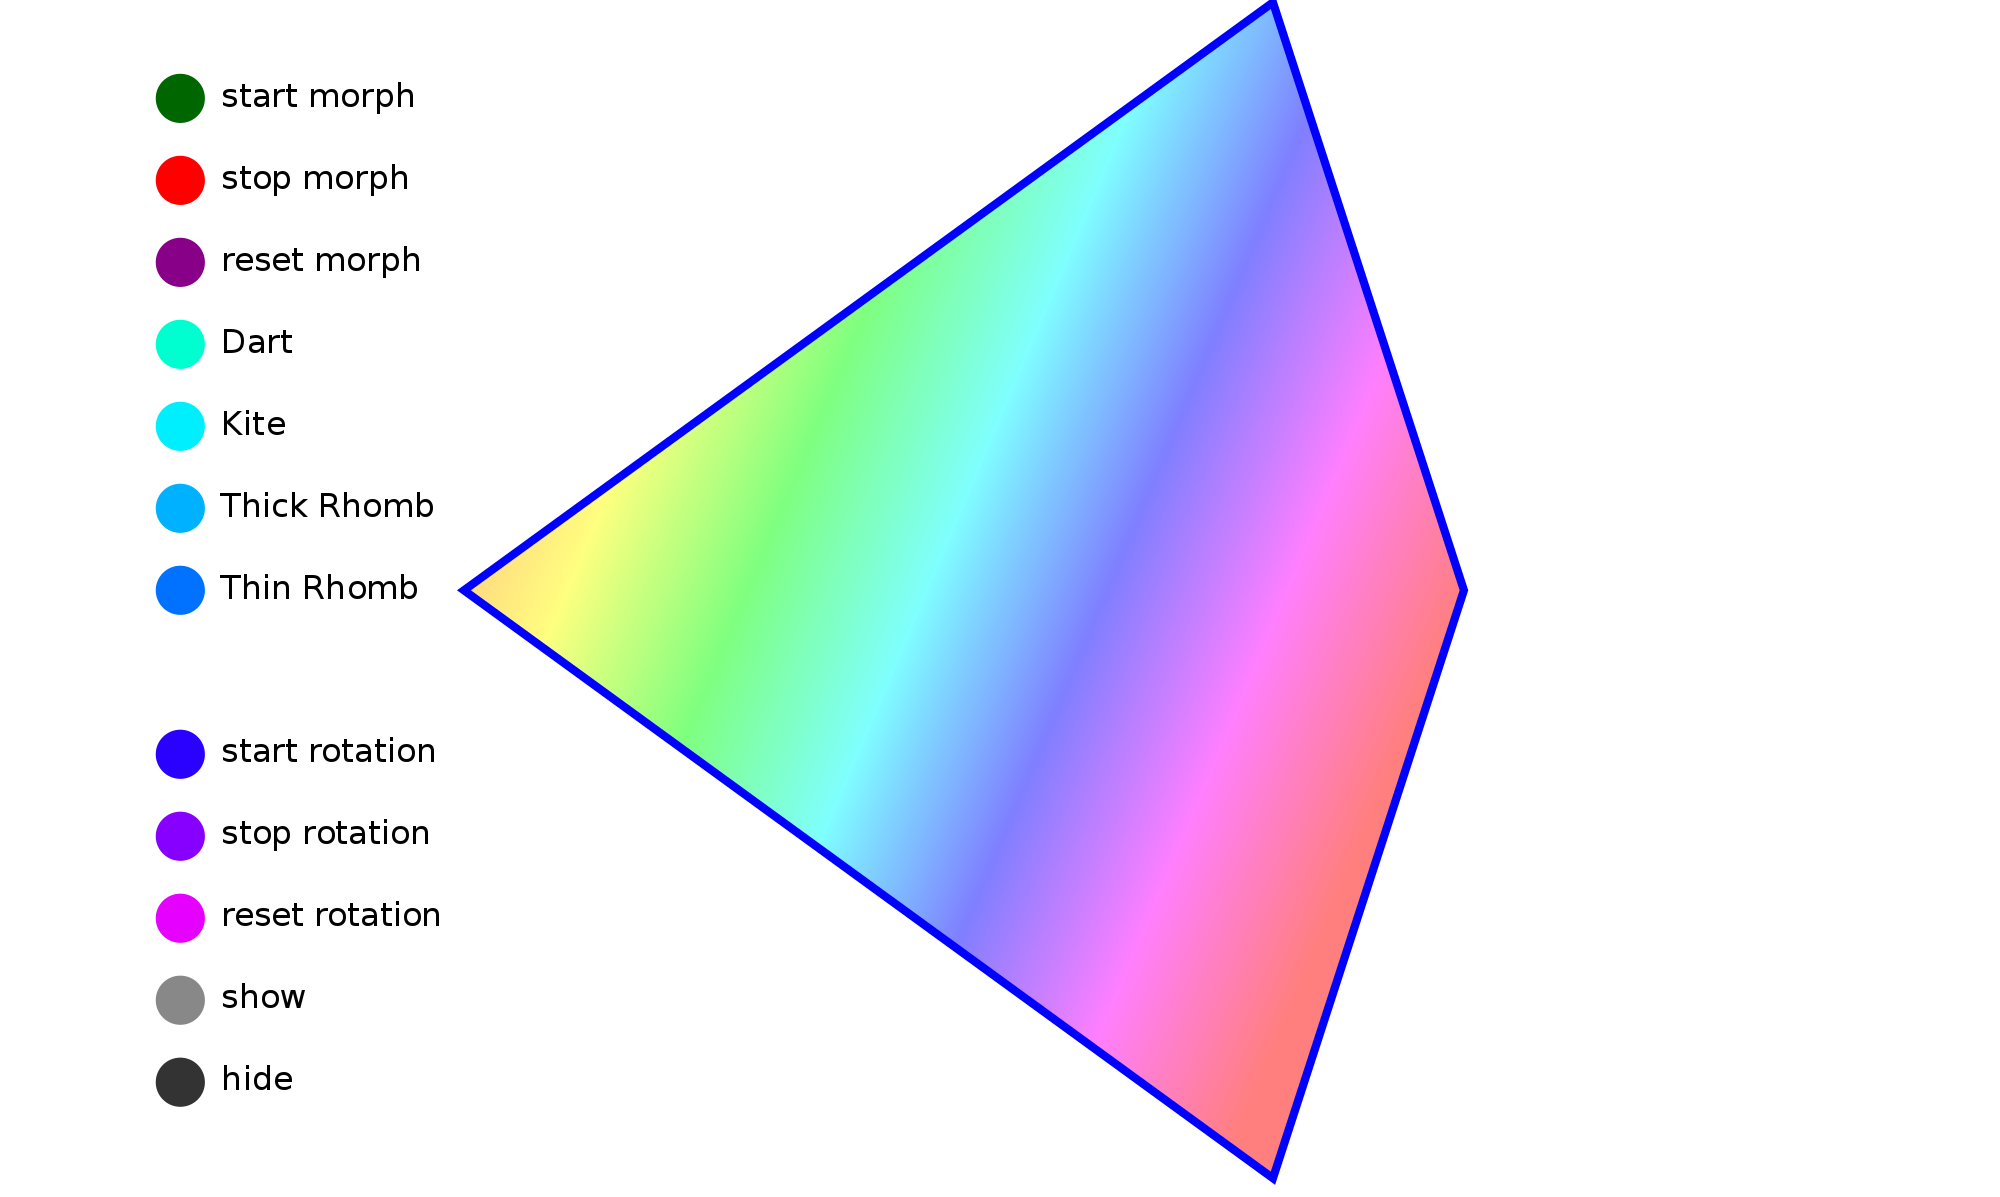 Svg morph. File animation with penrose